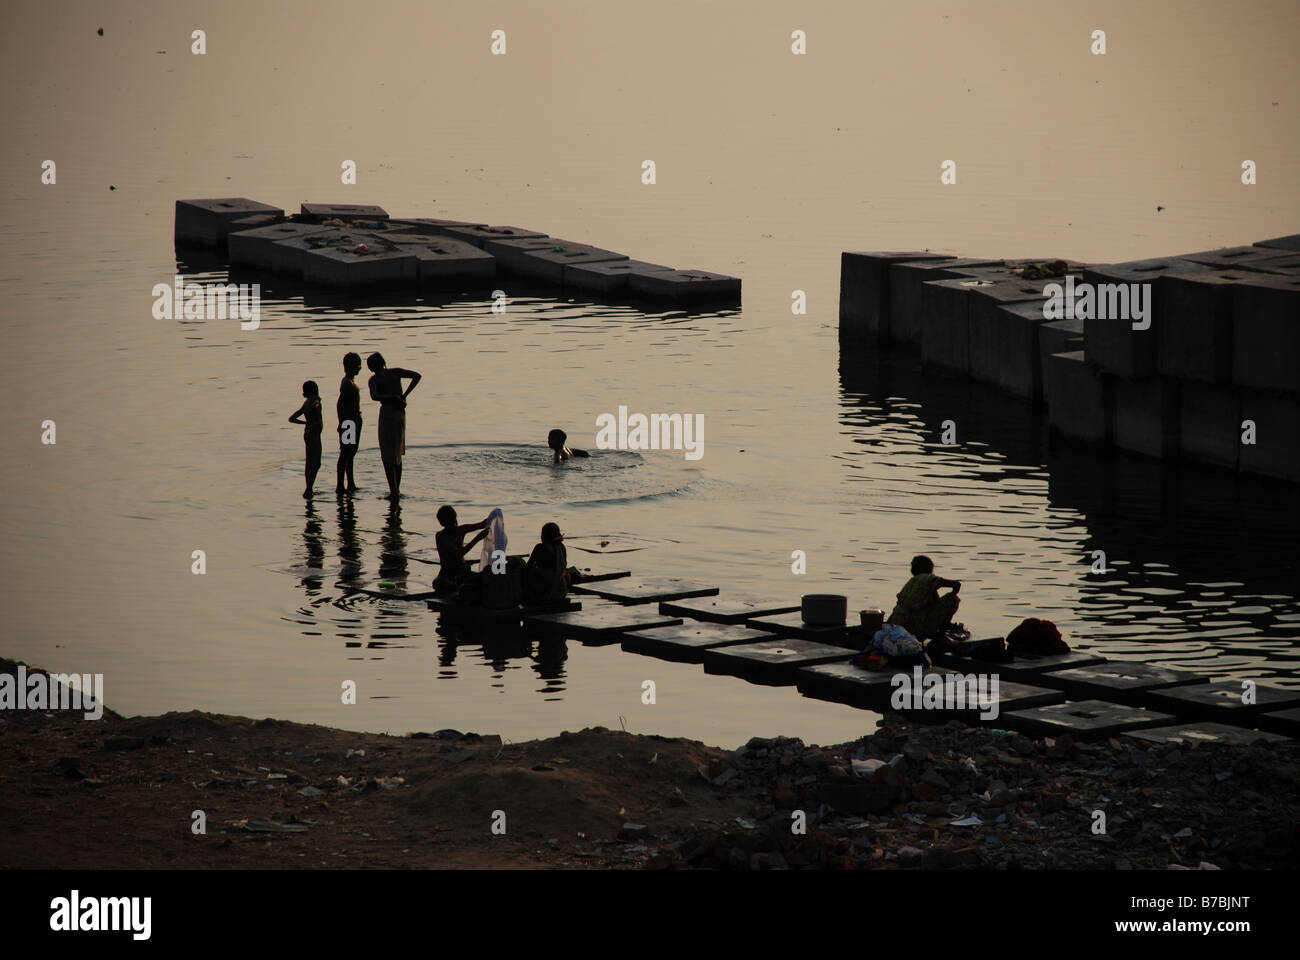 People bathing in the Sabarmati river, Ahmedabad, India. - Stock Image